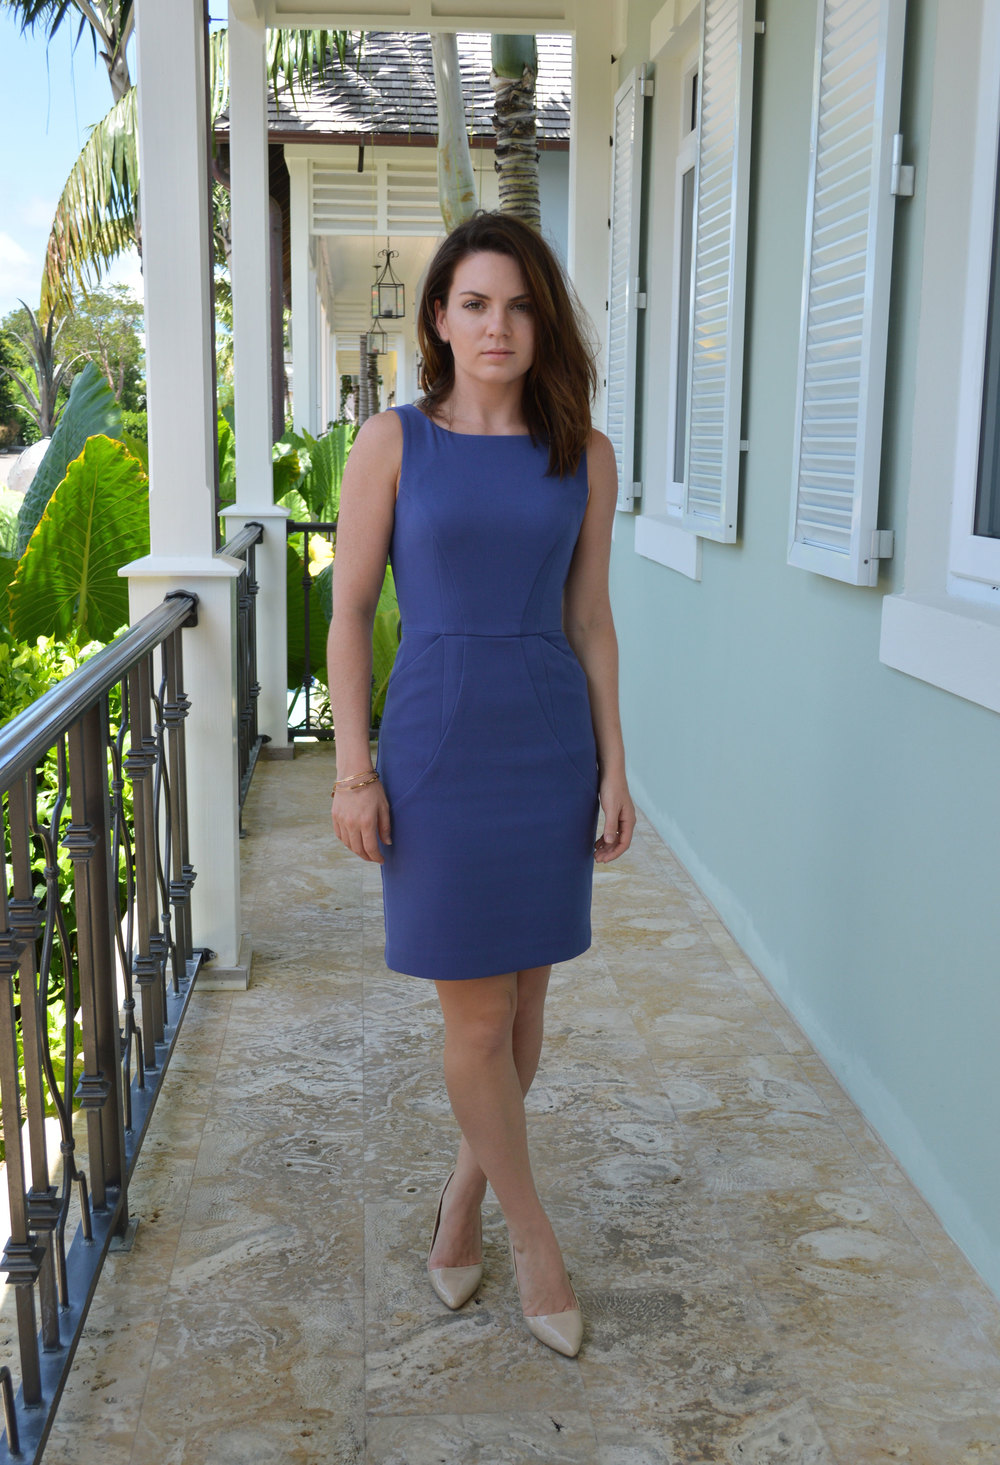 hm-dusty-blue-work-dress-aldo-shoes-wiw-church-nassau-blogger-style.jpeg